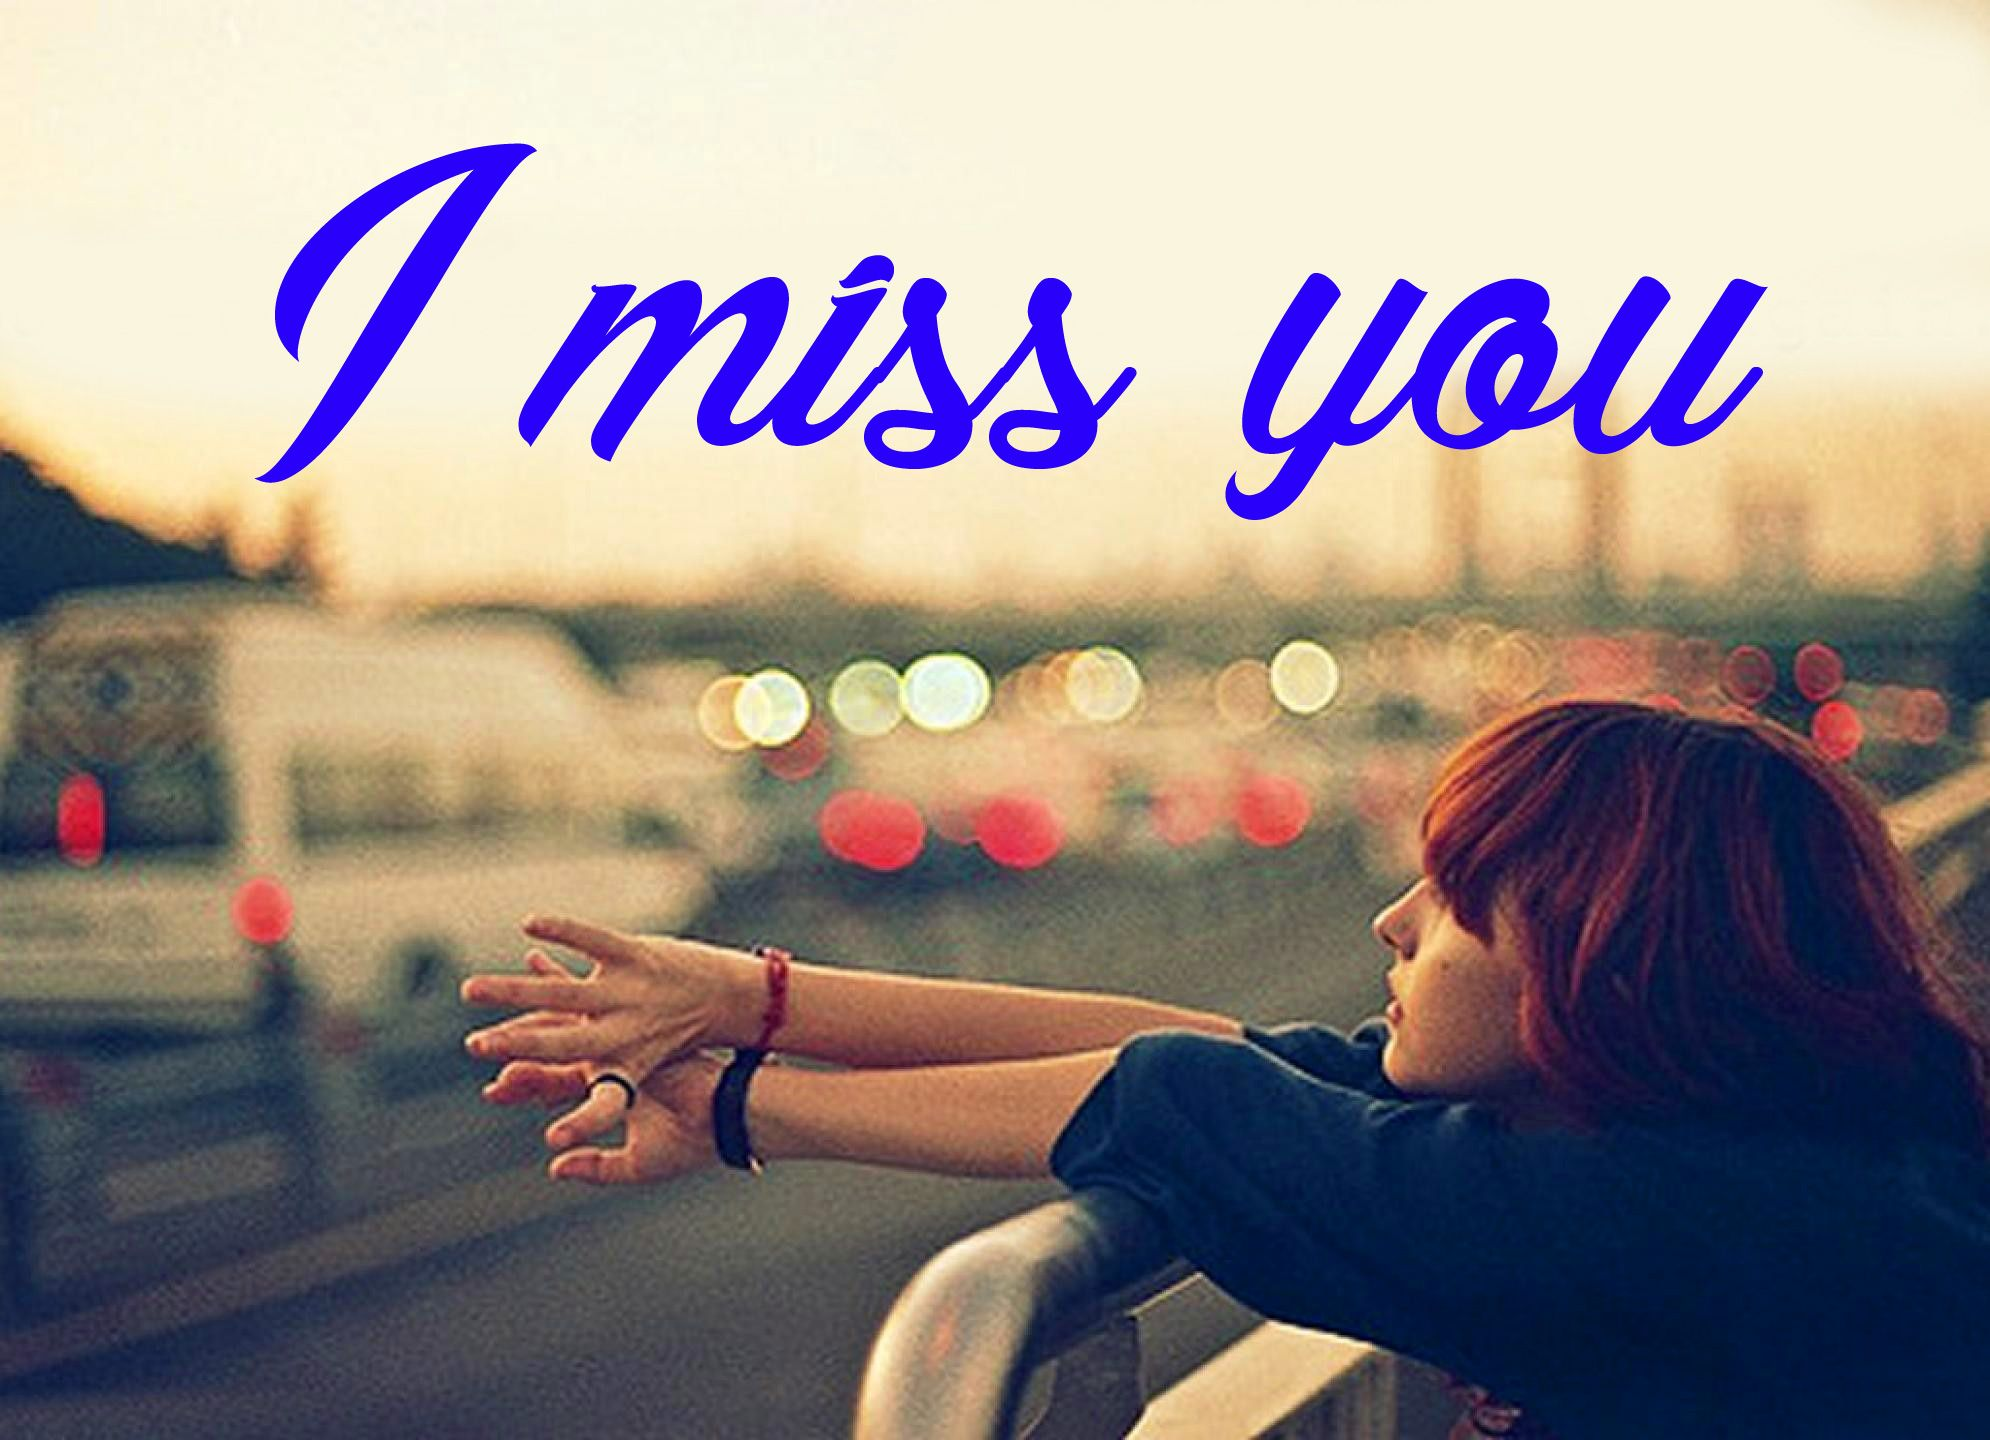 Hd I Miss You Wallpaper For Him Or Her Love Romantic Wallpapers Chobirdokan I Miss You Wallpaper Miss You Images I Miss You